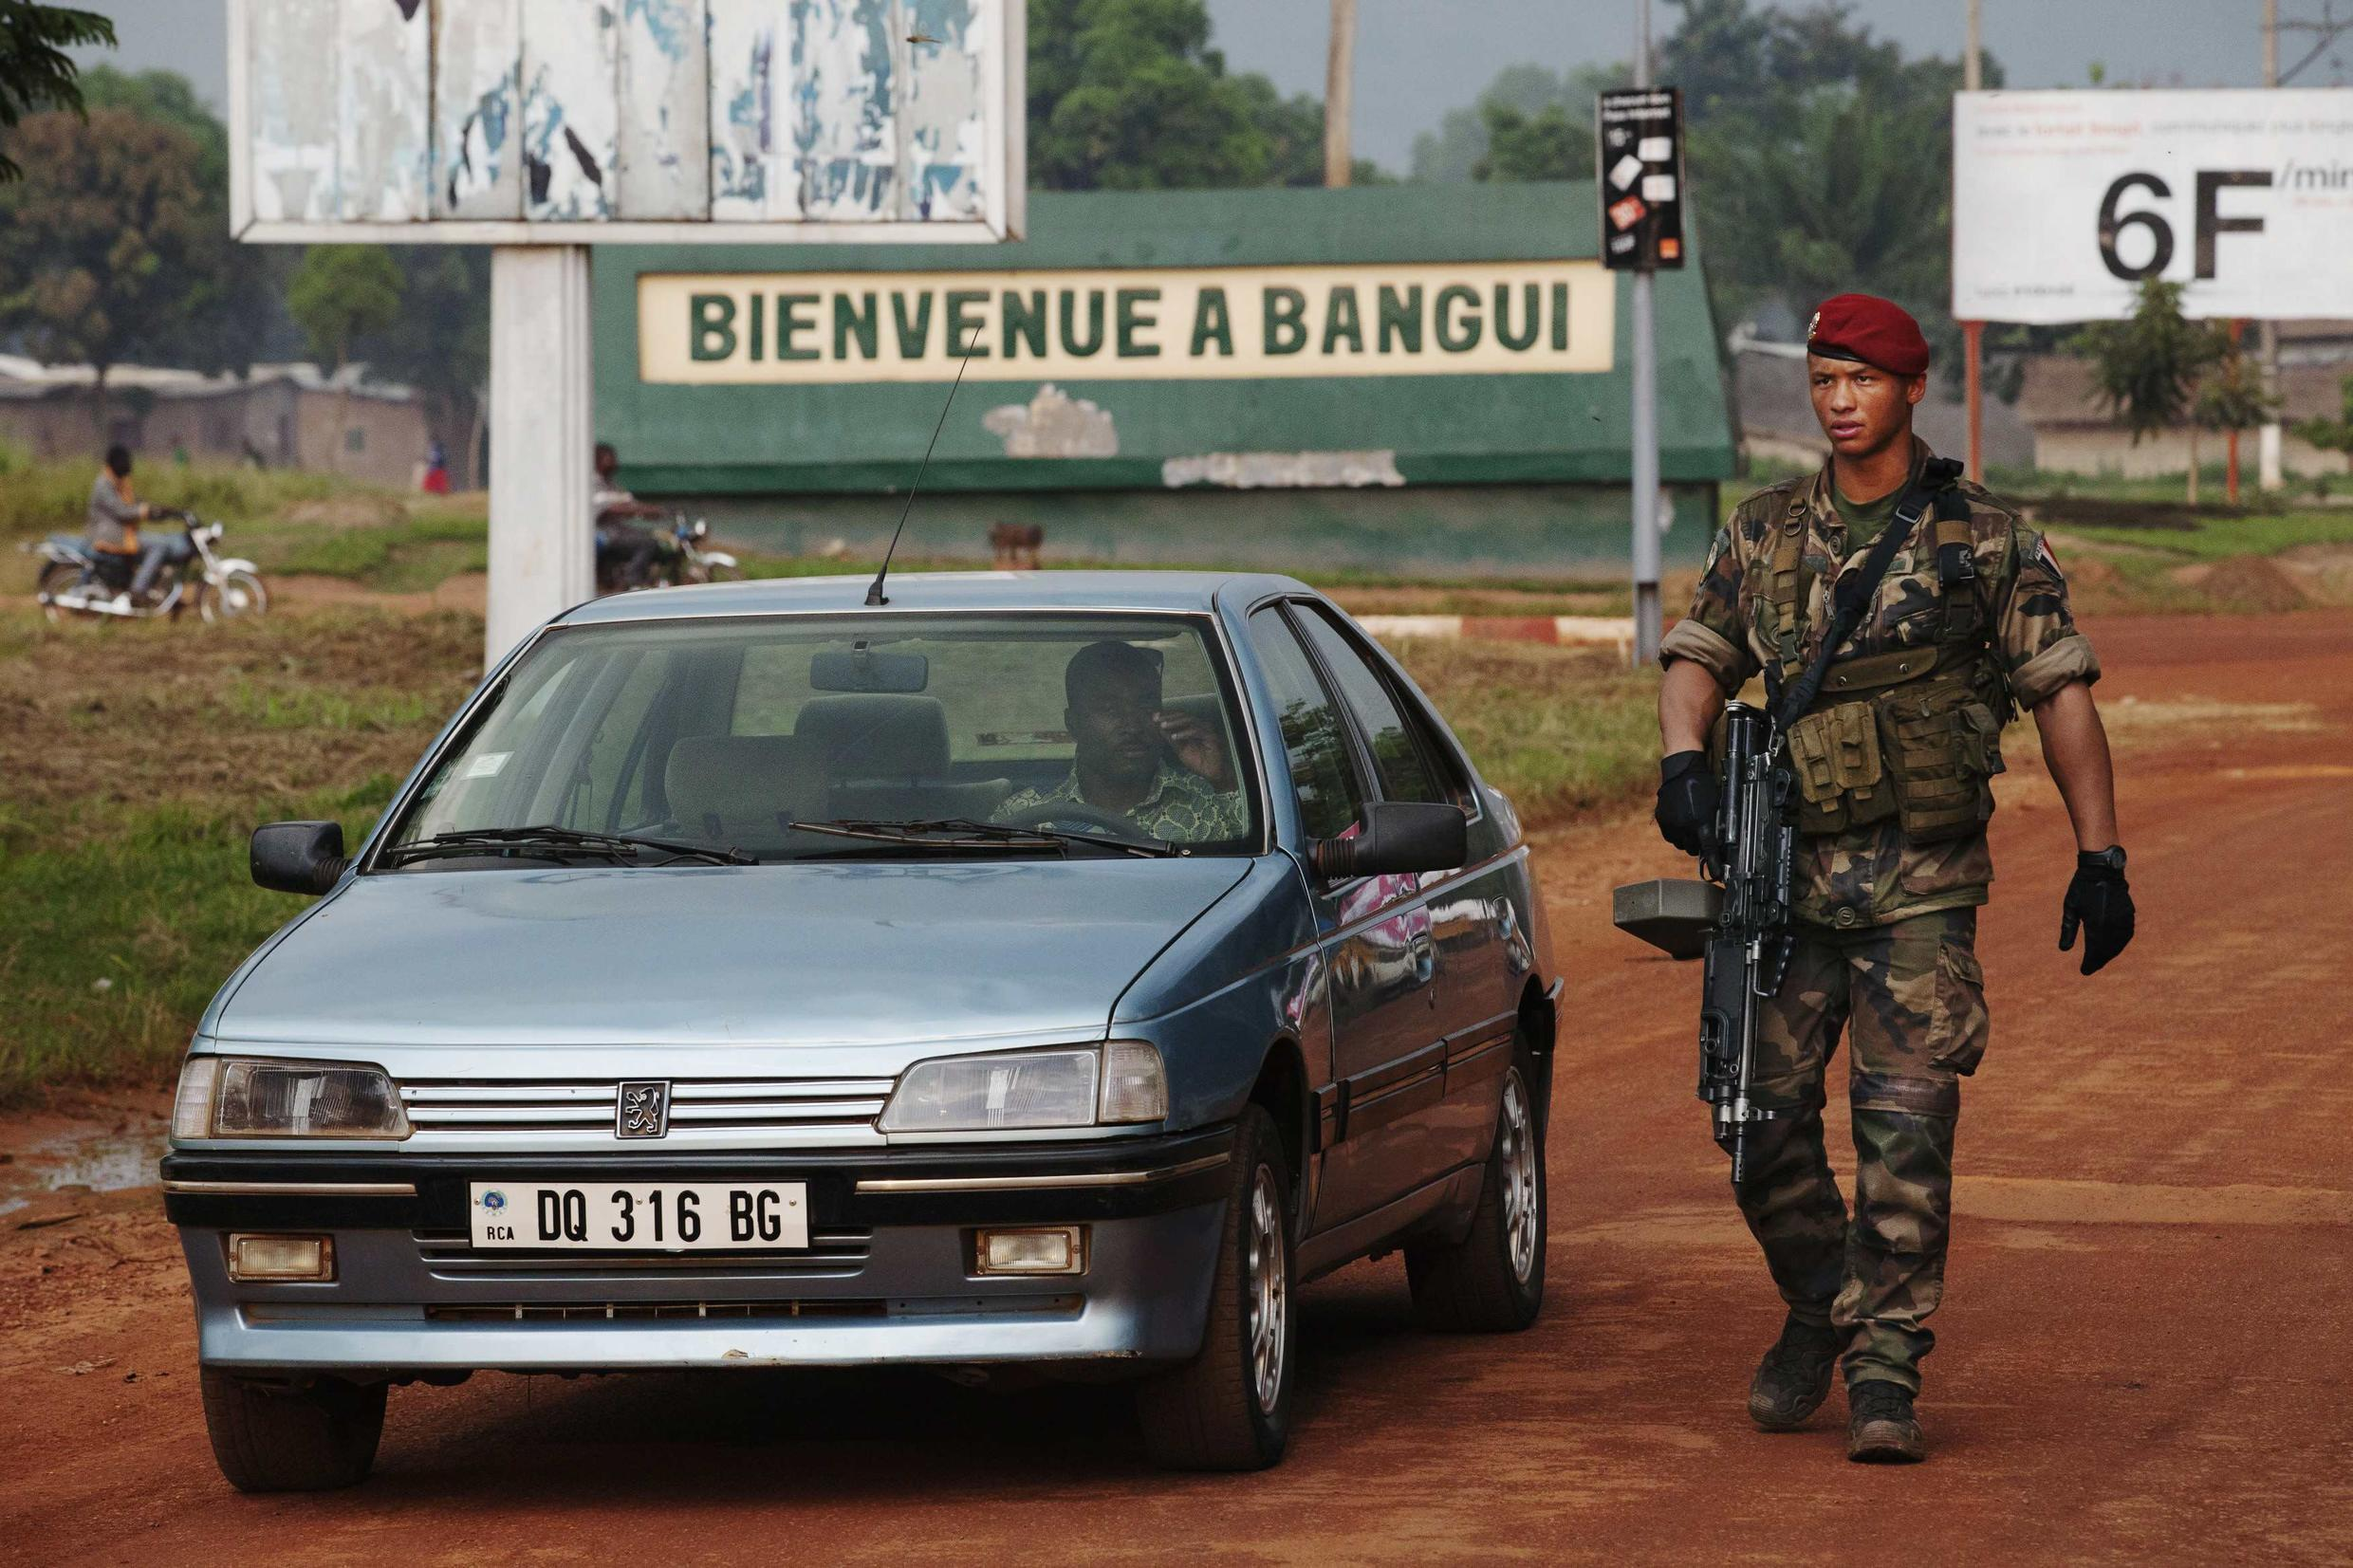 A French soldier inspects a car at a checkpoint at the Mpoko airport in Bangui